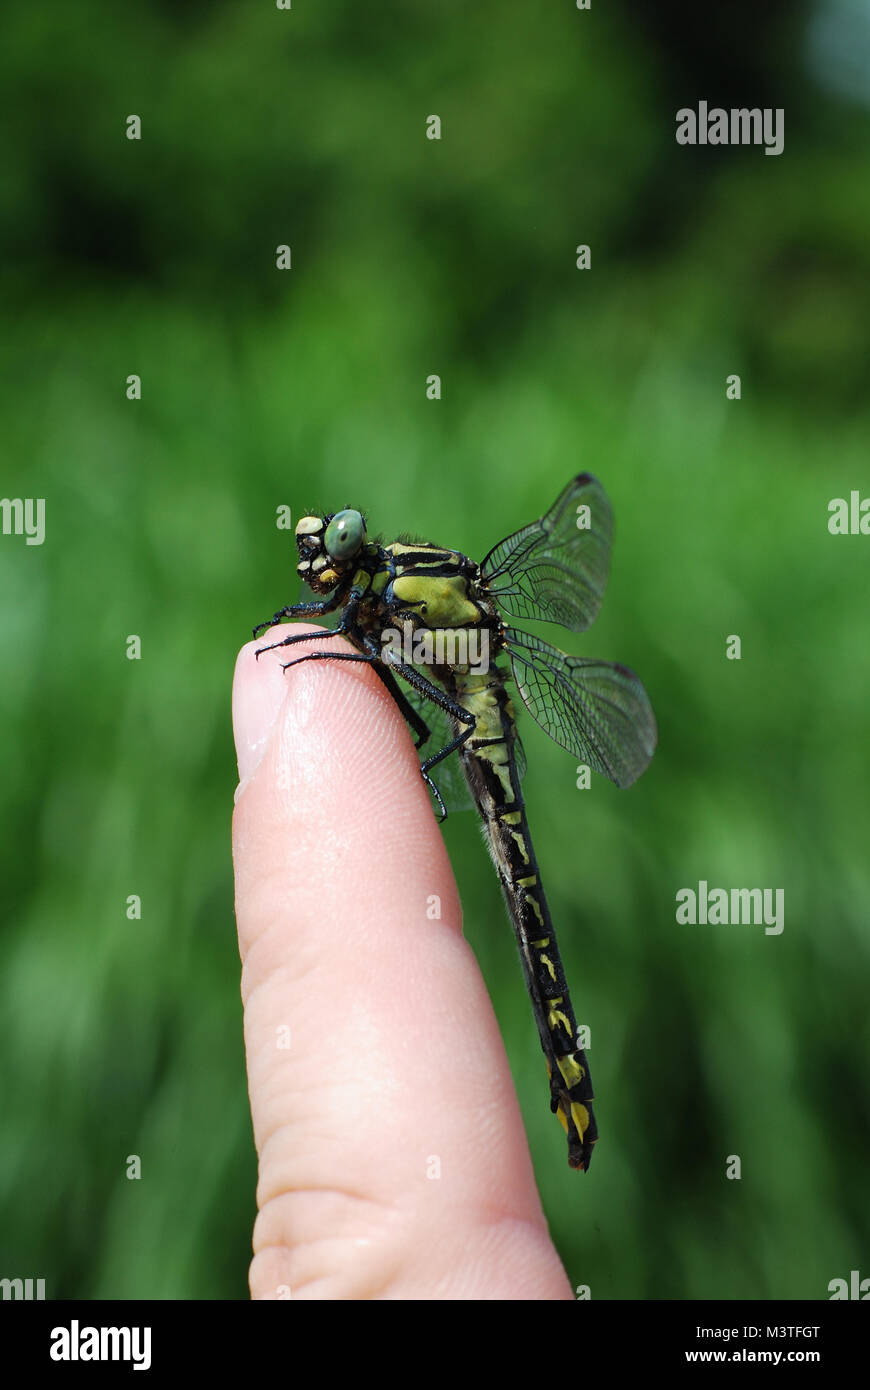 large dragonfly sitting on a finger in the garden hochformat - Stock Image